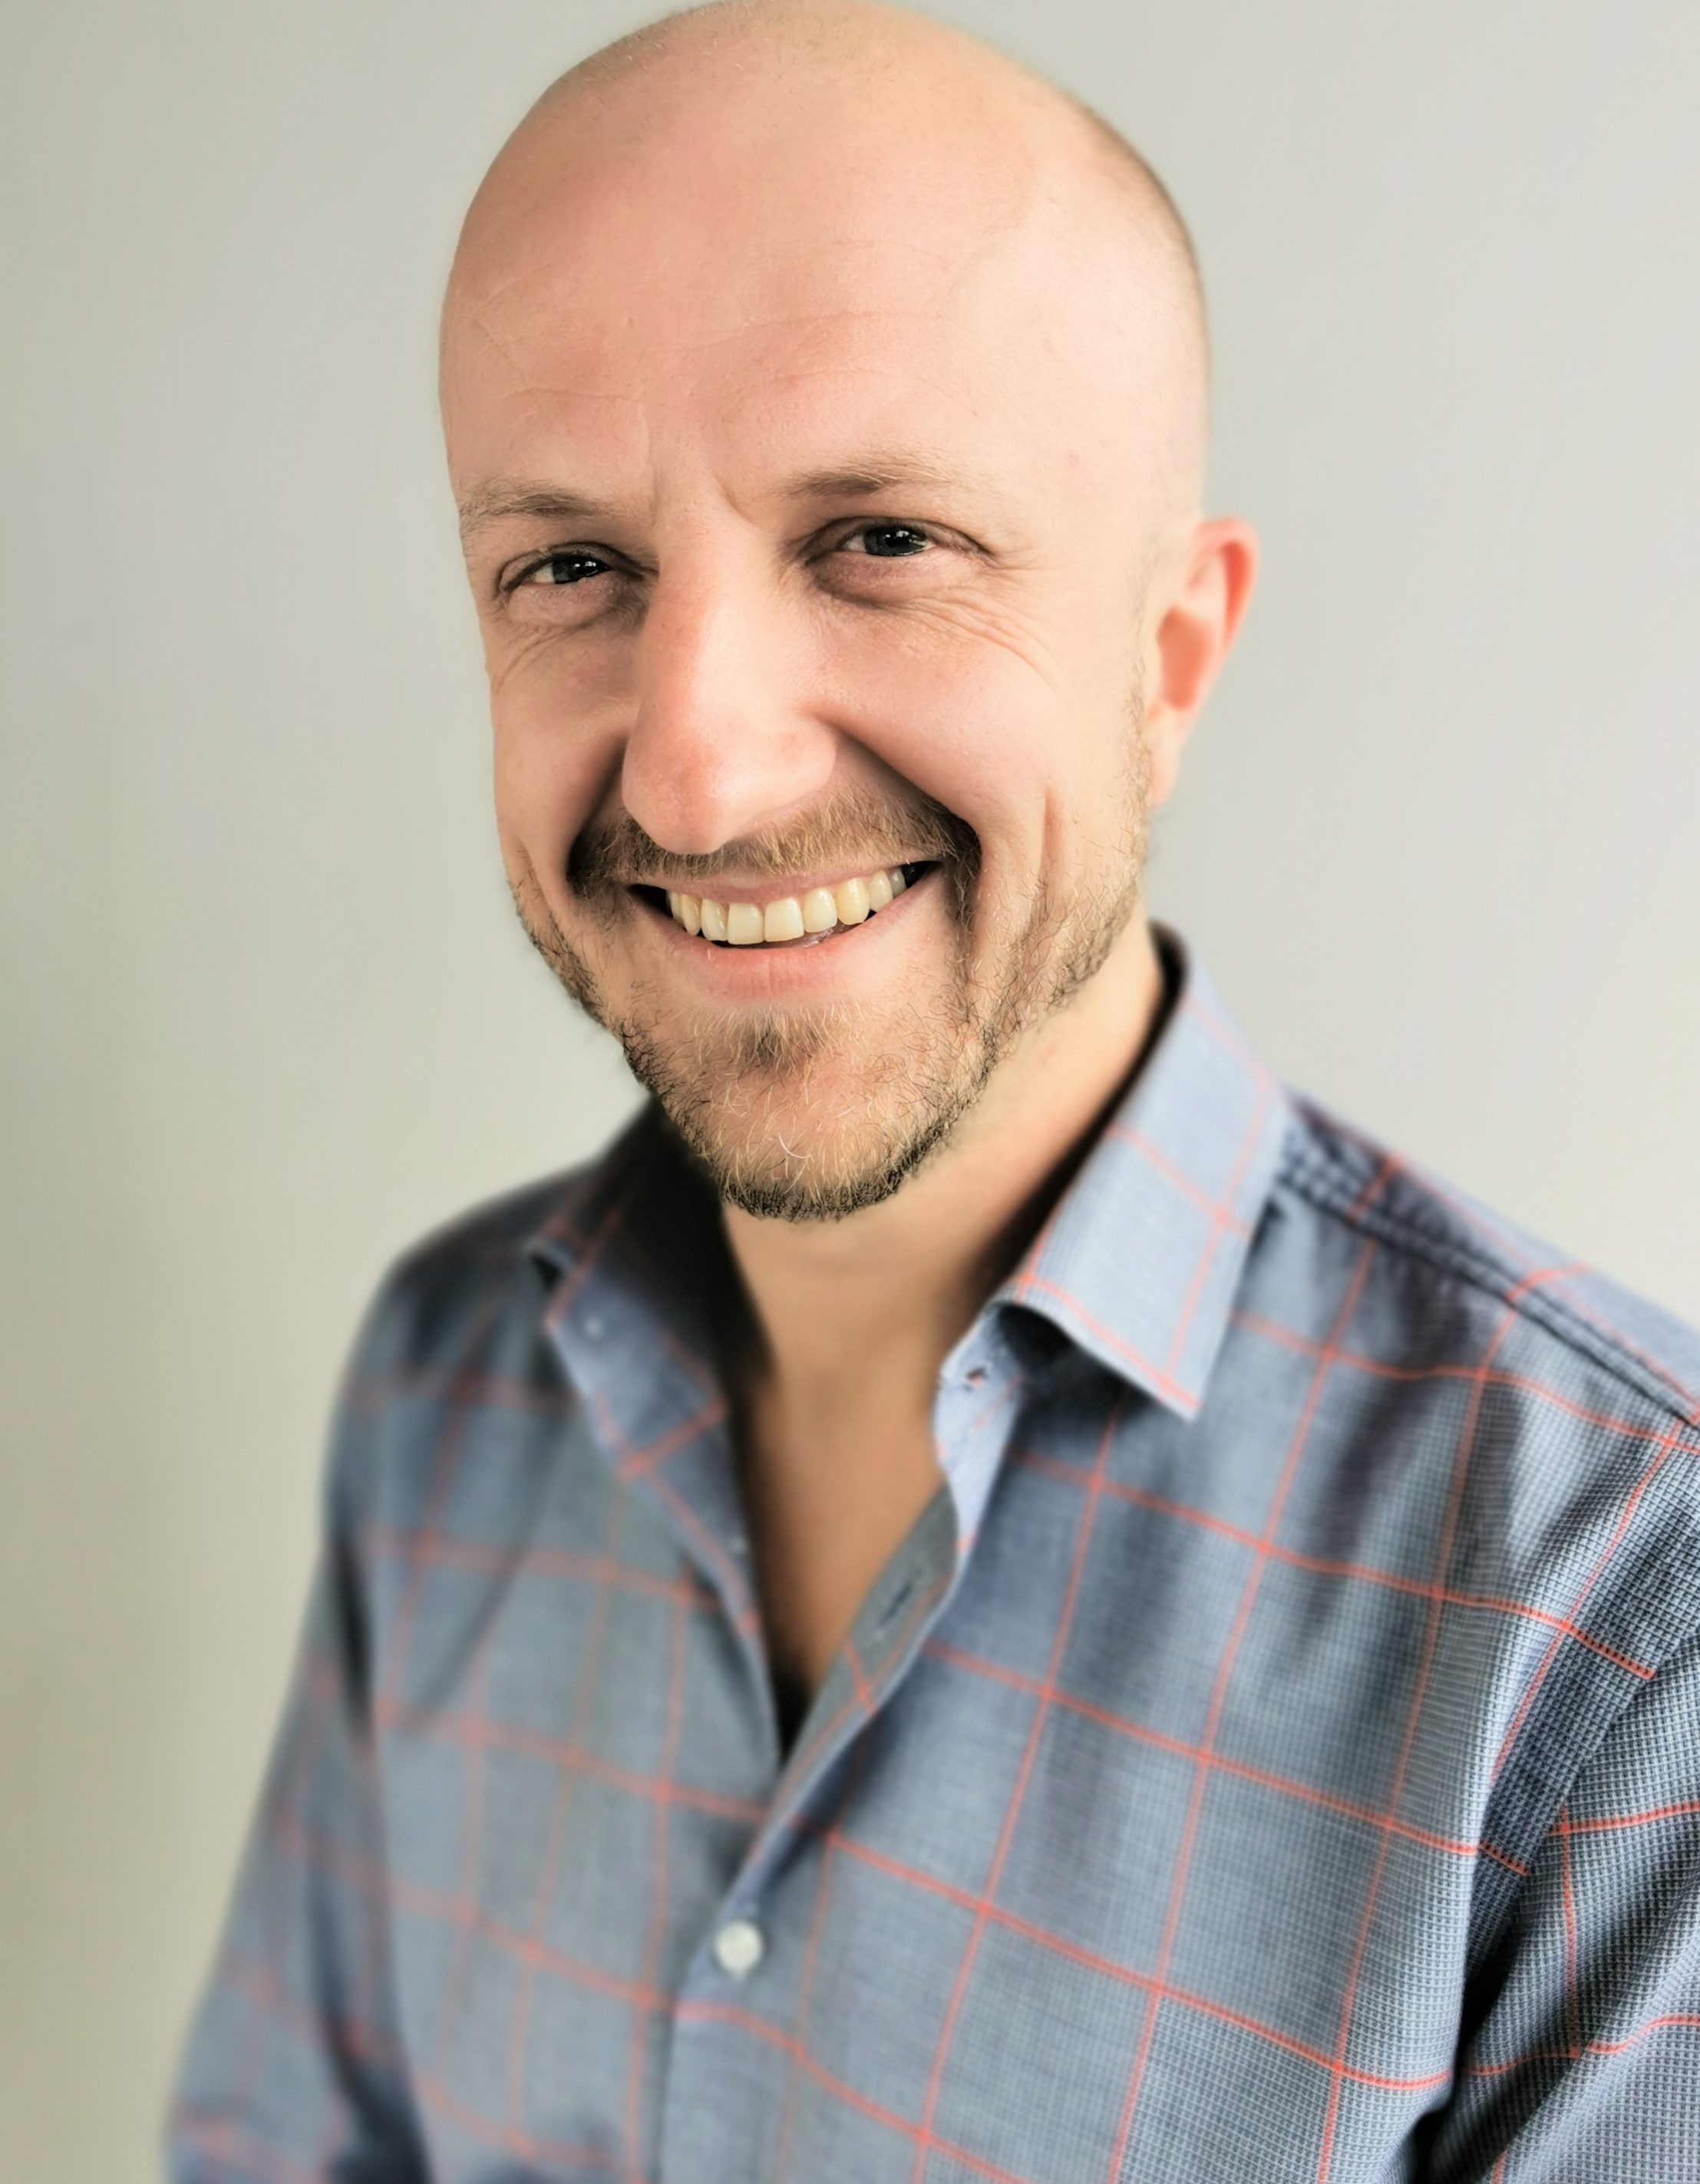 Indie Agency The Media Store Bolsters Team With New Hires From DAN & MediaCom